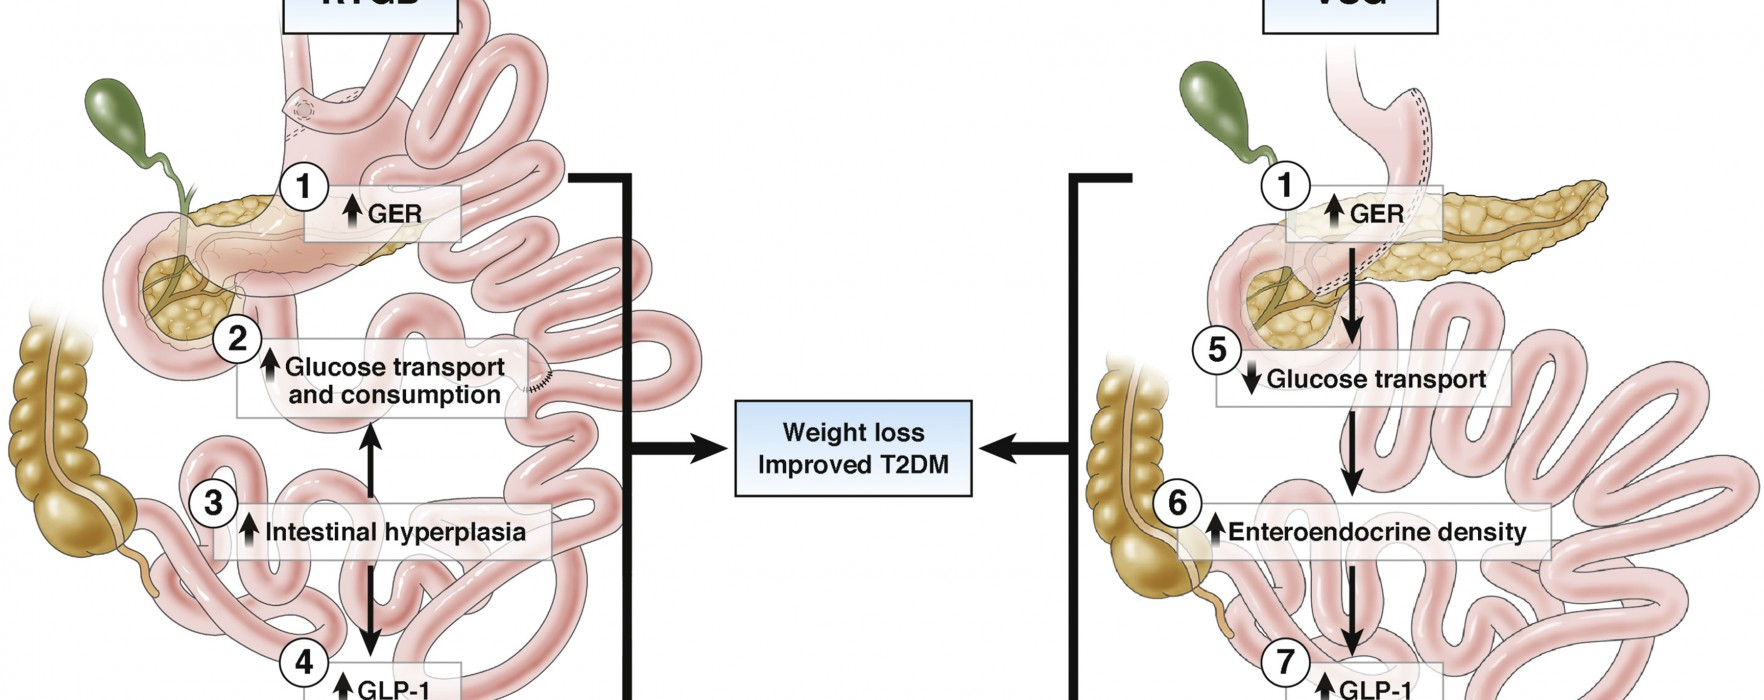 What Changes Occur in the Intestine After Gastric Bypass vs Vertical Sleeve Gastrectomy ?